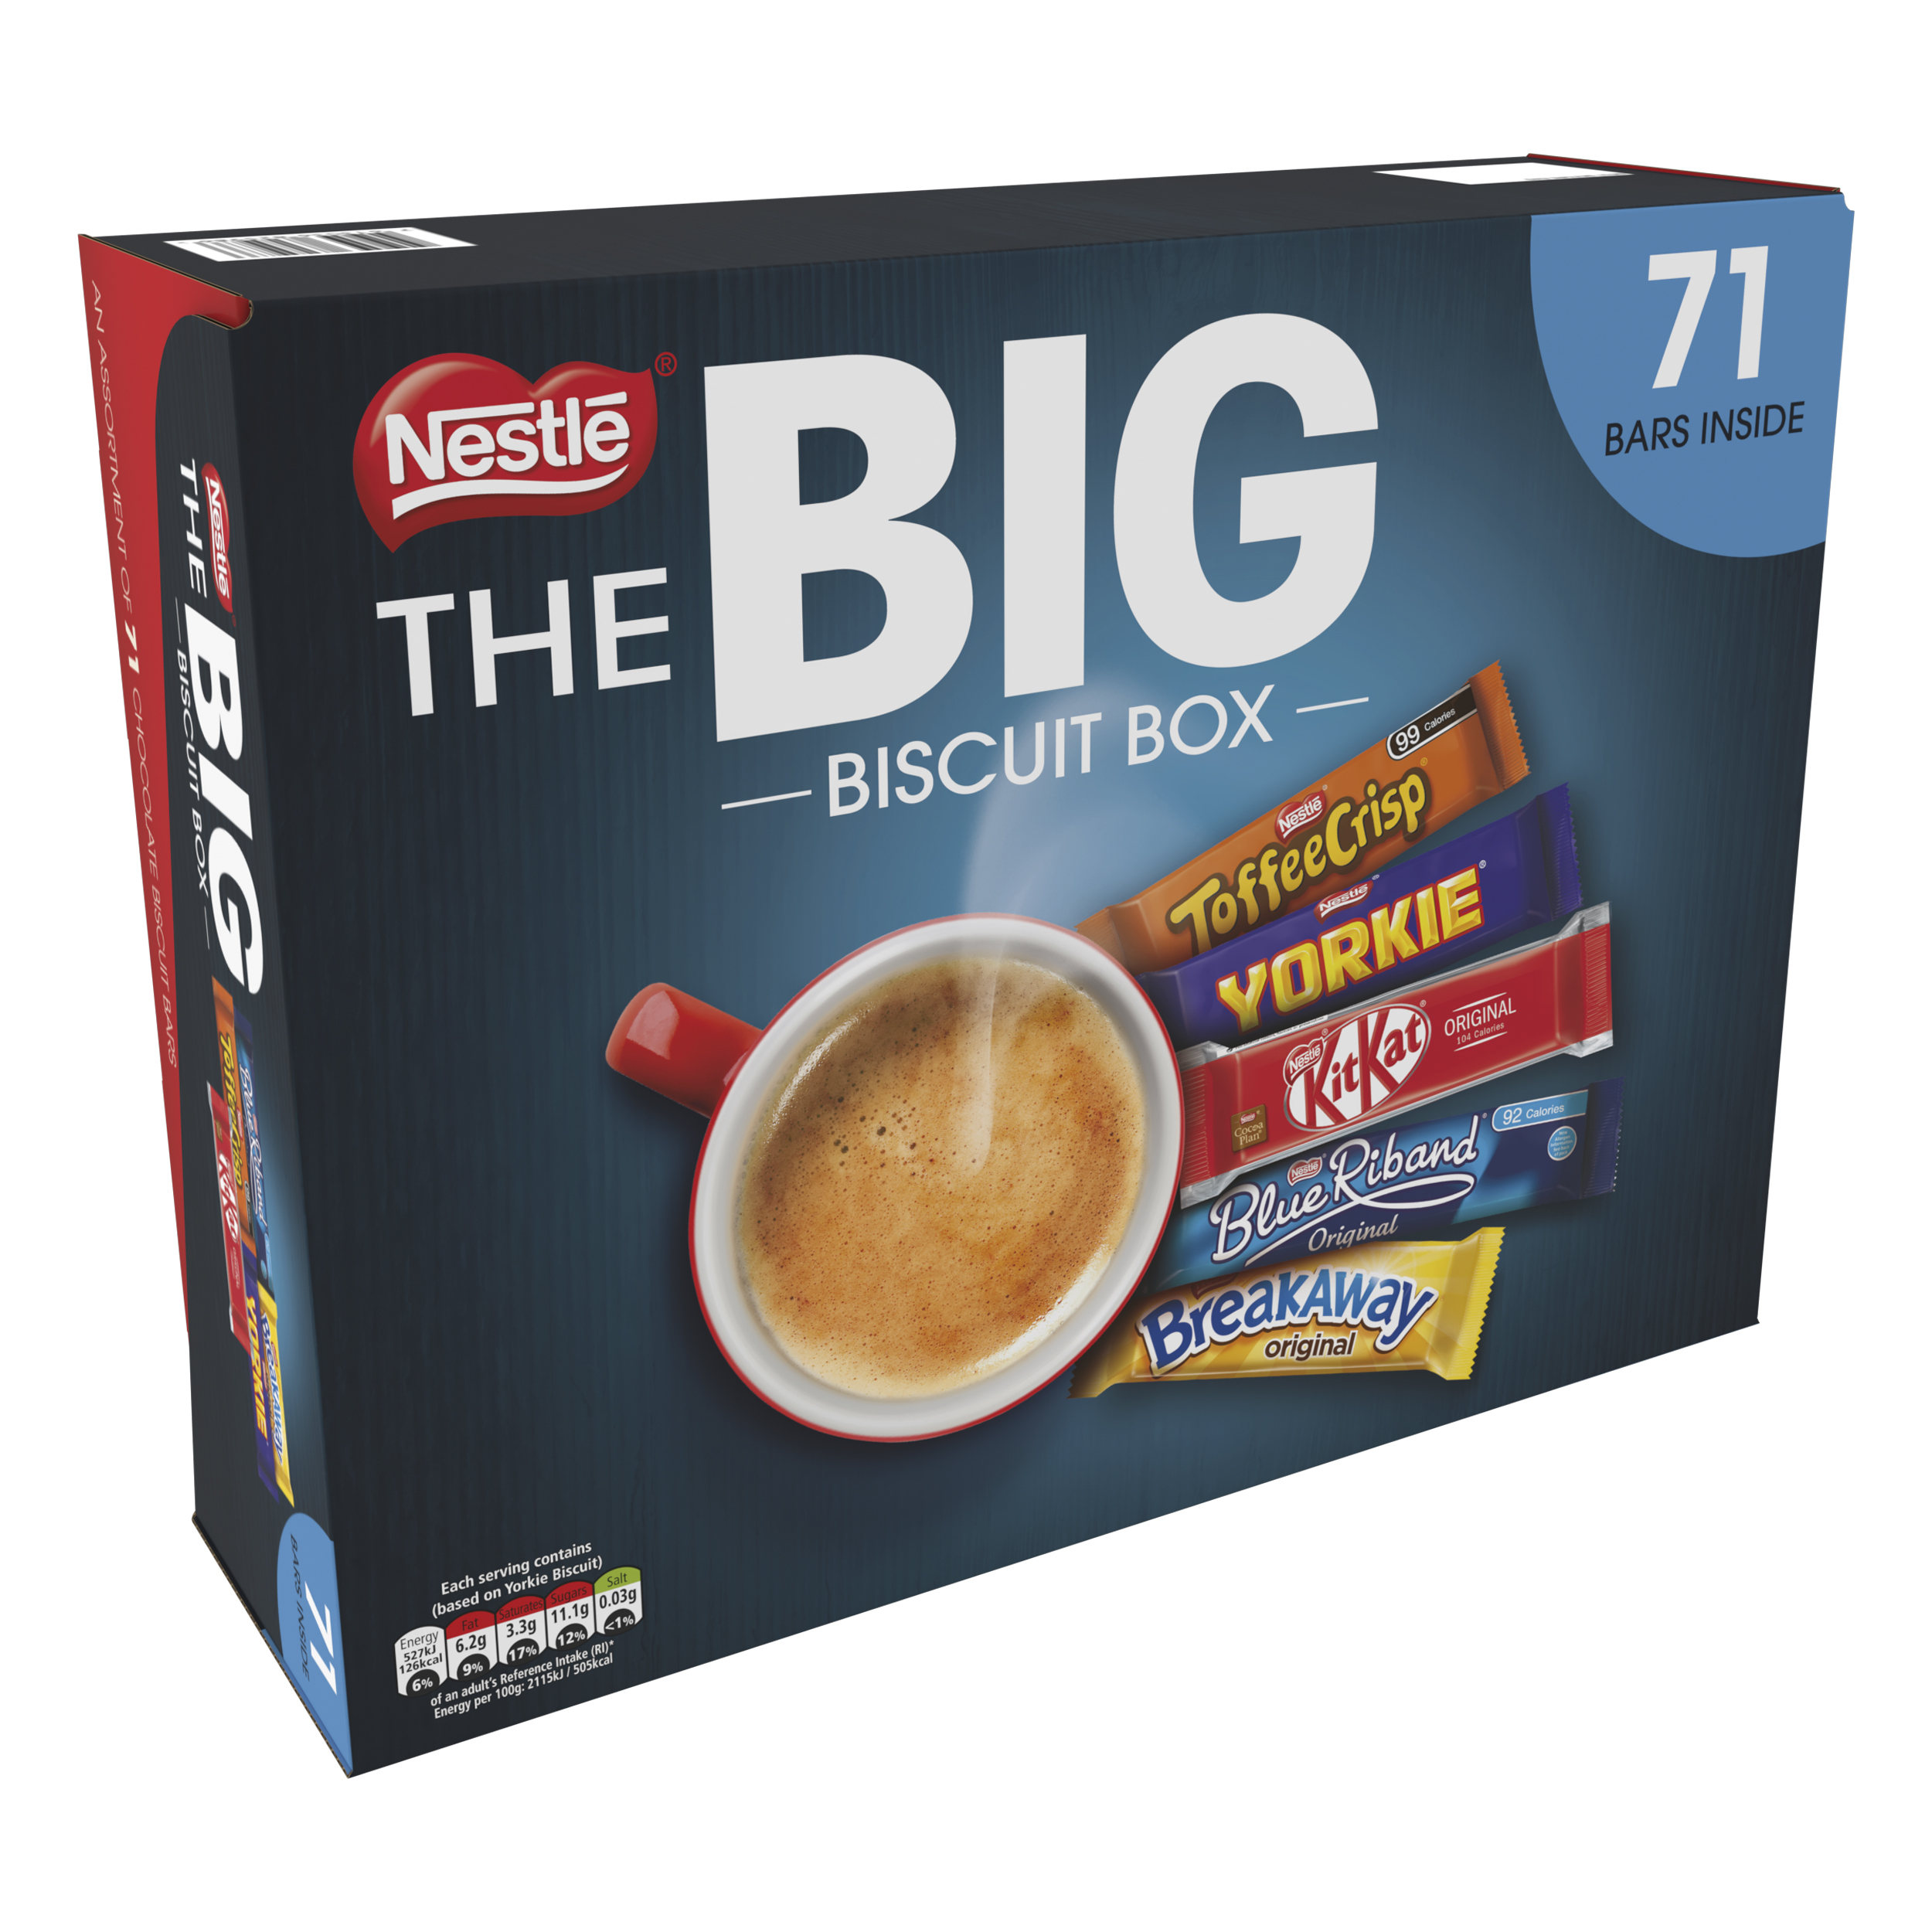 Biscuits Nestle Big Chocolate Box Five Assorted Biscuit Bars Ref 12391006 Pack 71